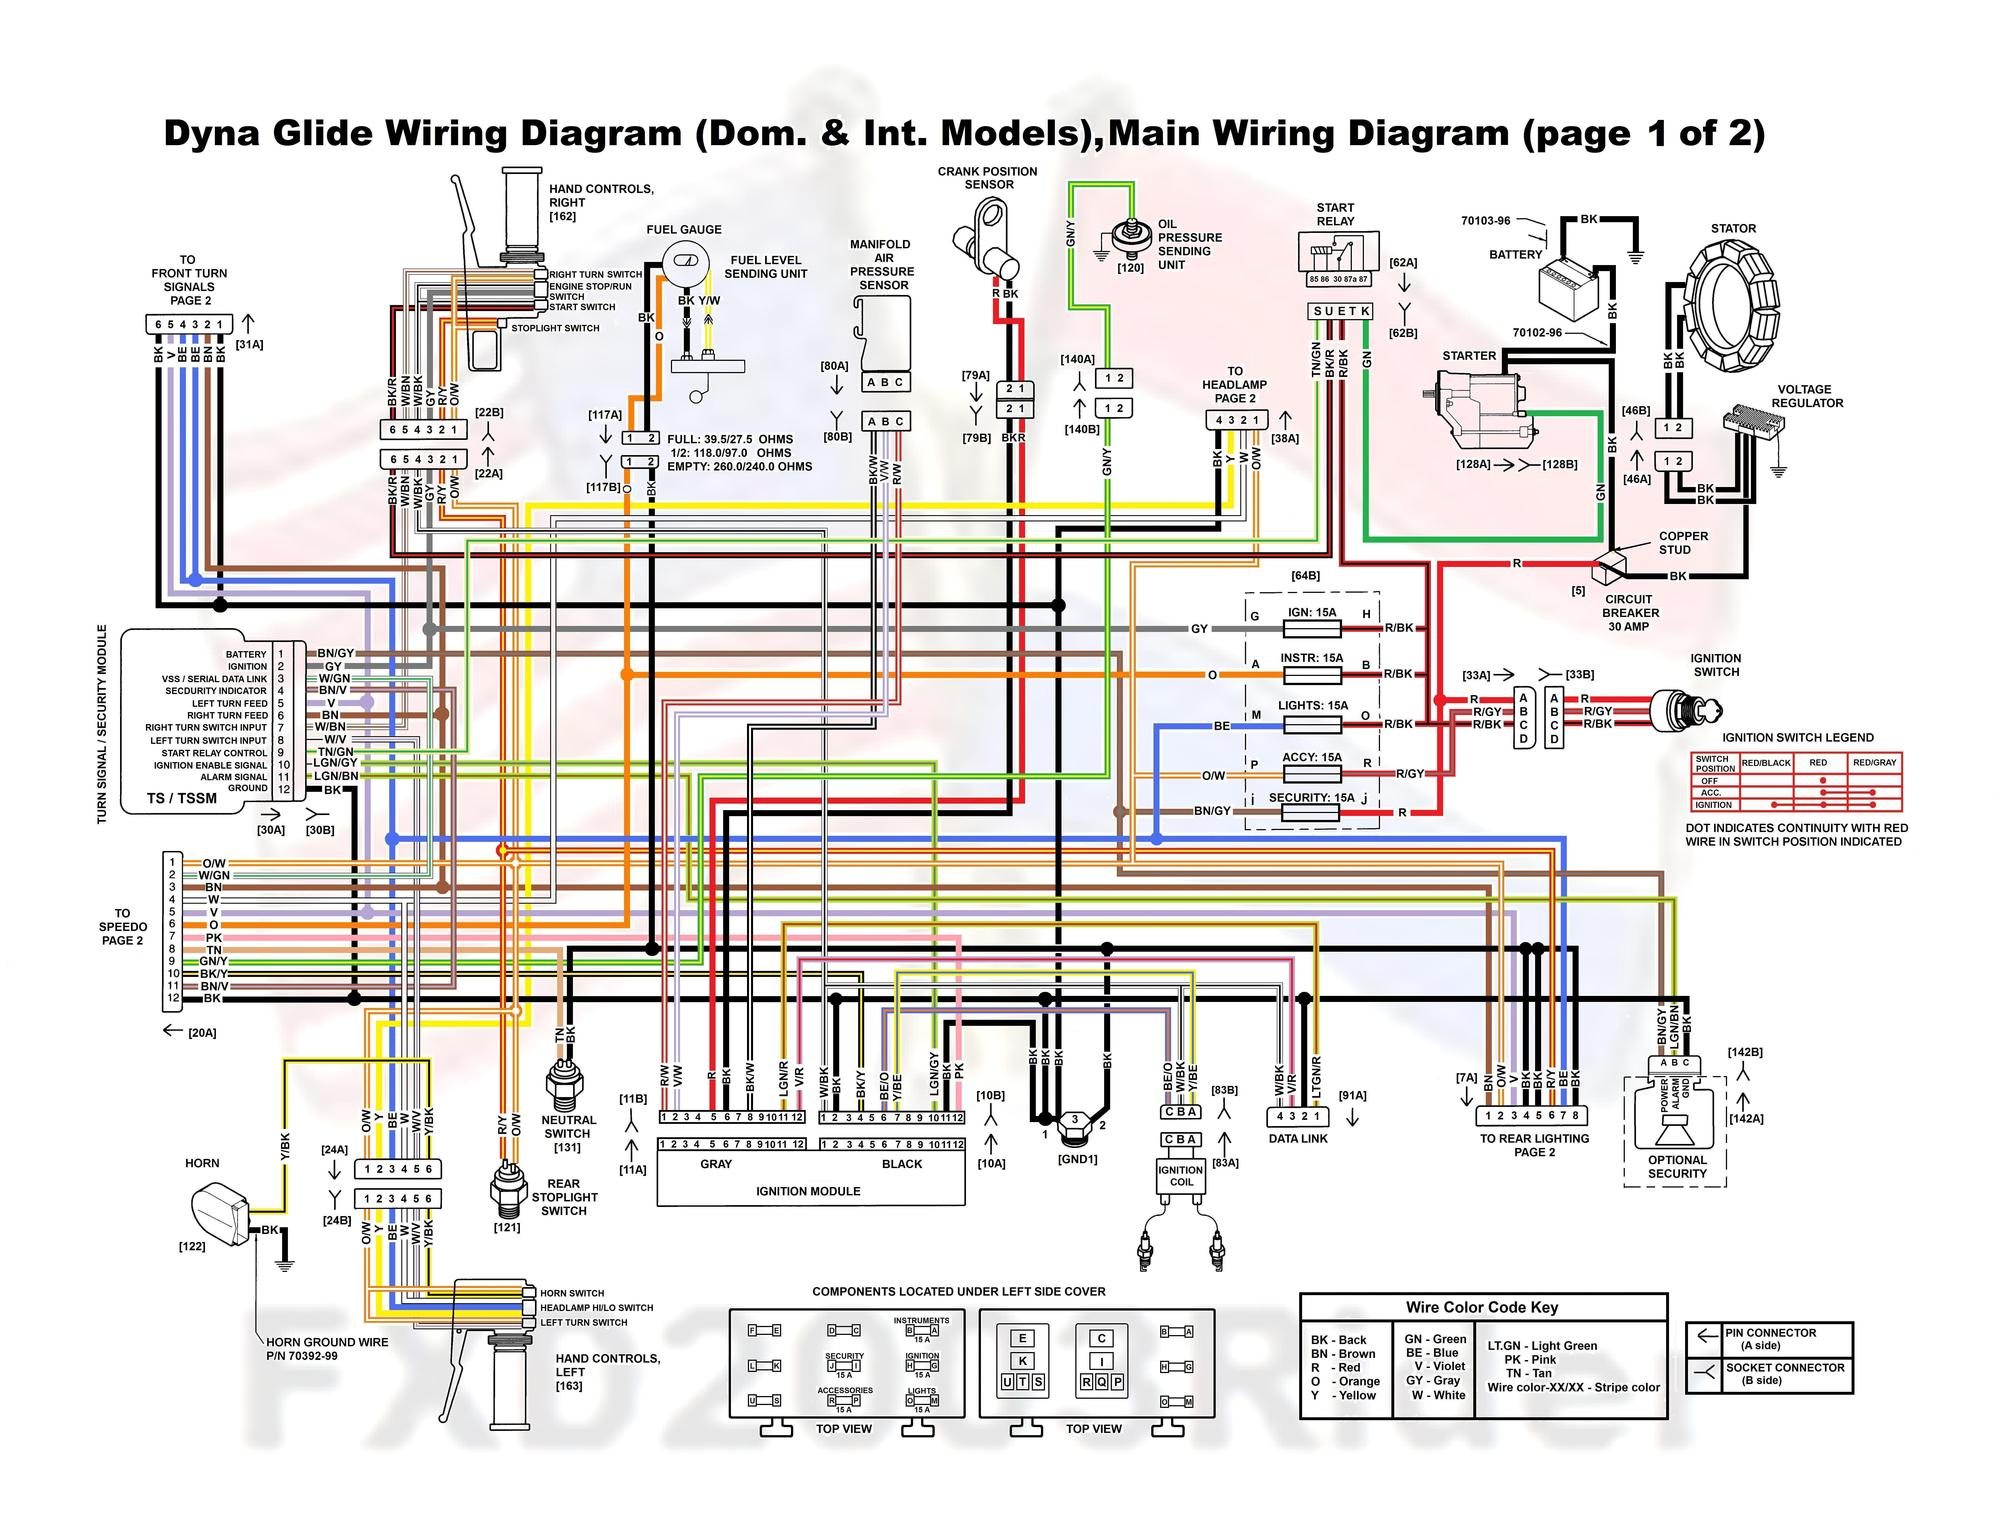 harley motor electrical diagram wiring diagram portal harley davidson dash warning lights harley davidson electric wiring diagram [ 2000 x 1522 Pixel ]